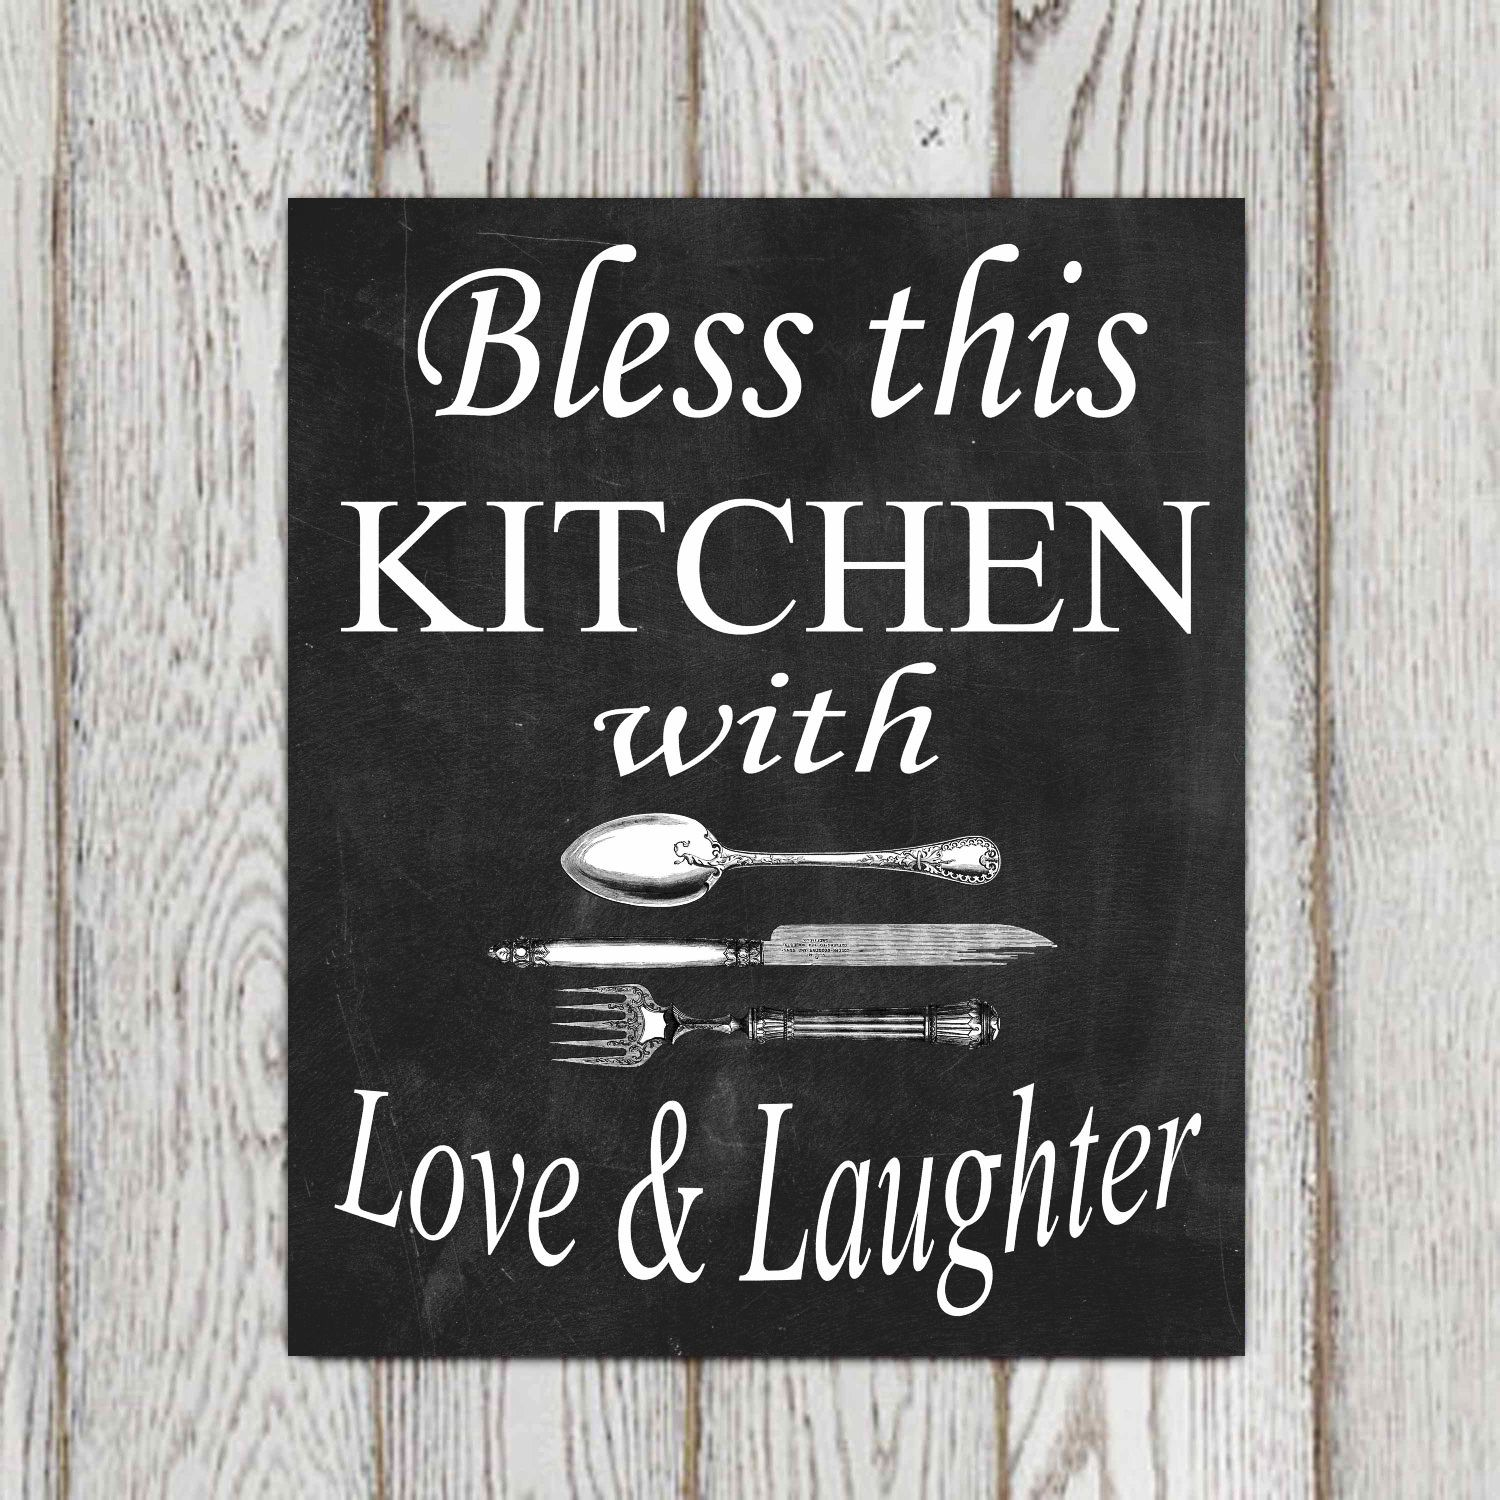 Love Obsession Quotes Bless This Kitchen With Love & Laughter   Foodie Quotes